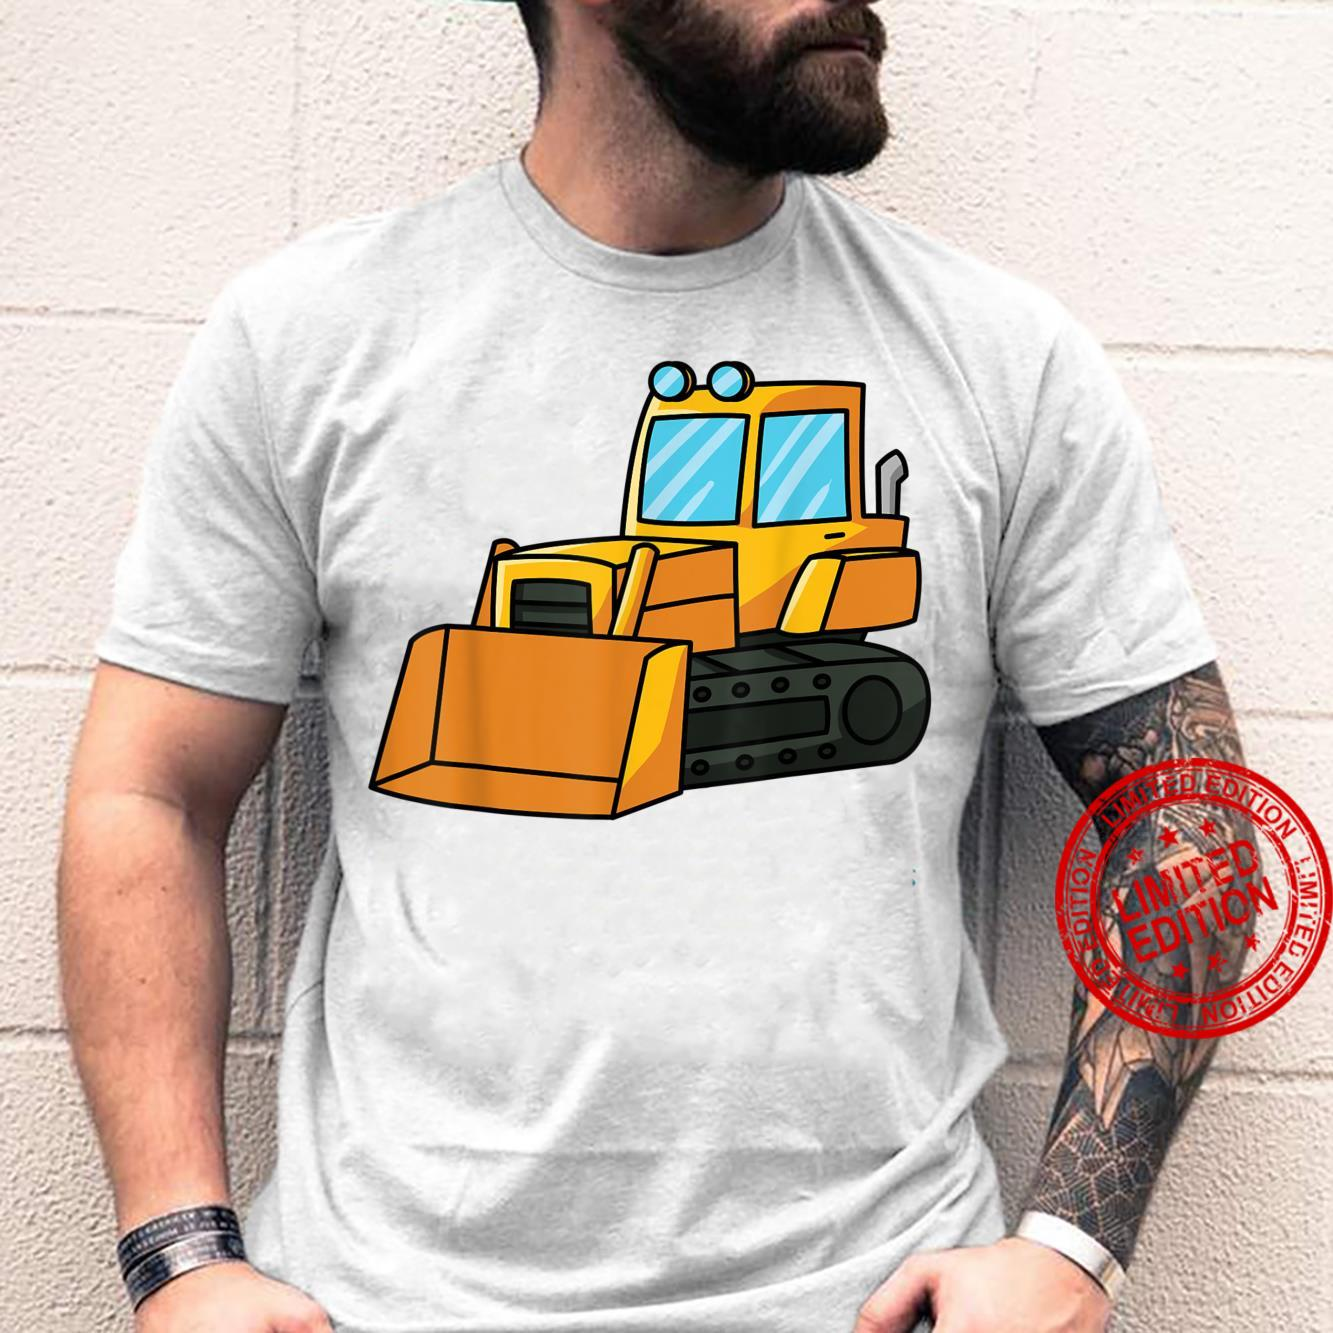 Digger excavator dredger construction site play toy Shirt